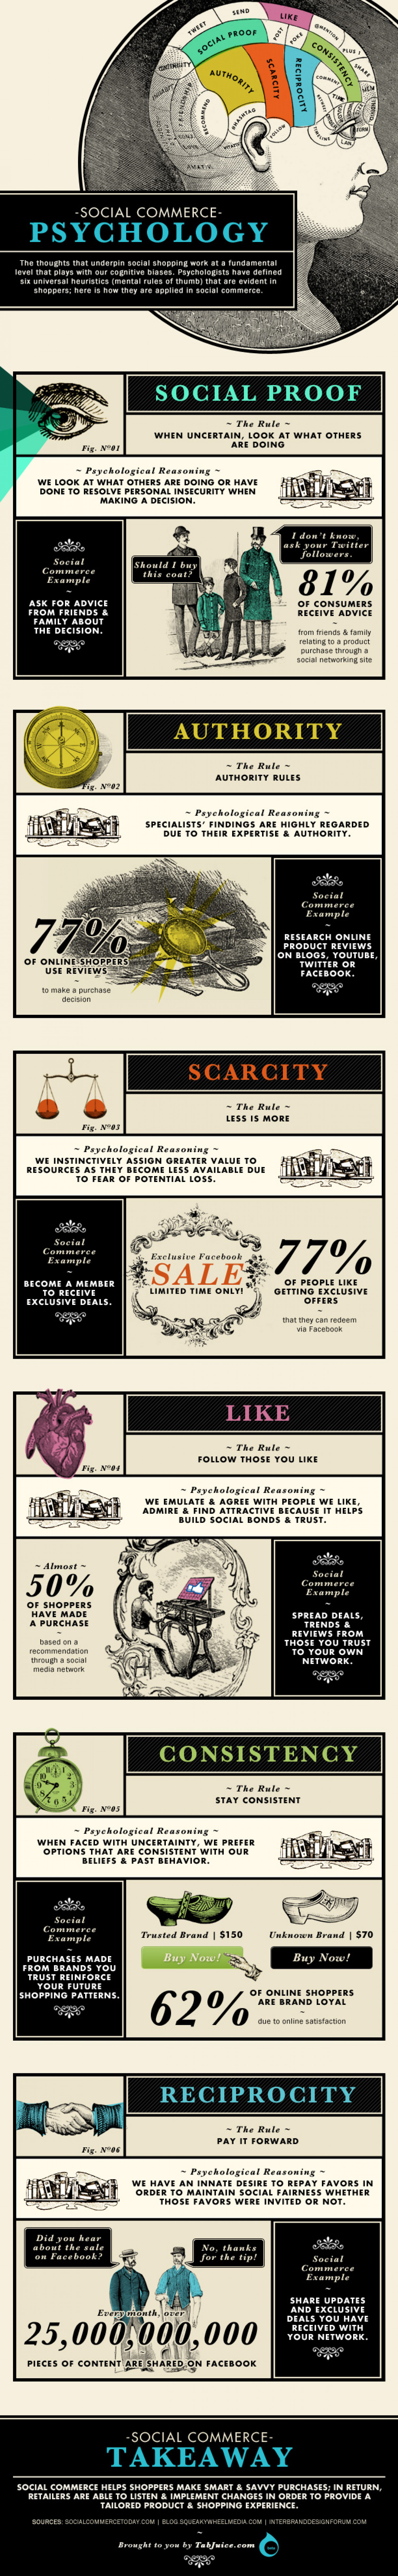 Social Commerce Psychology Infographic